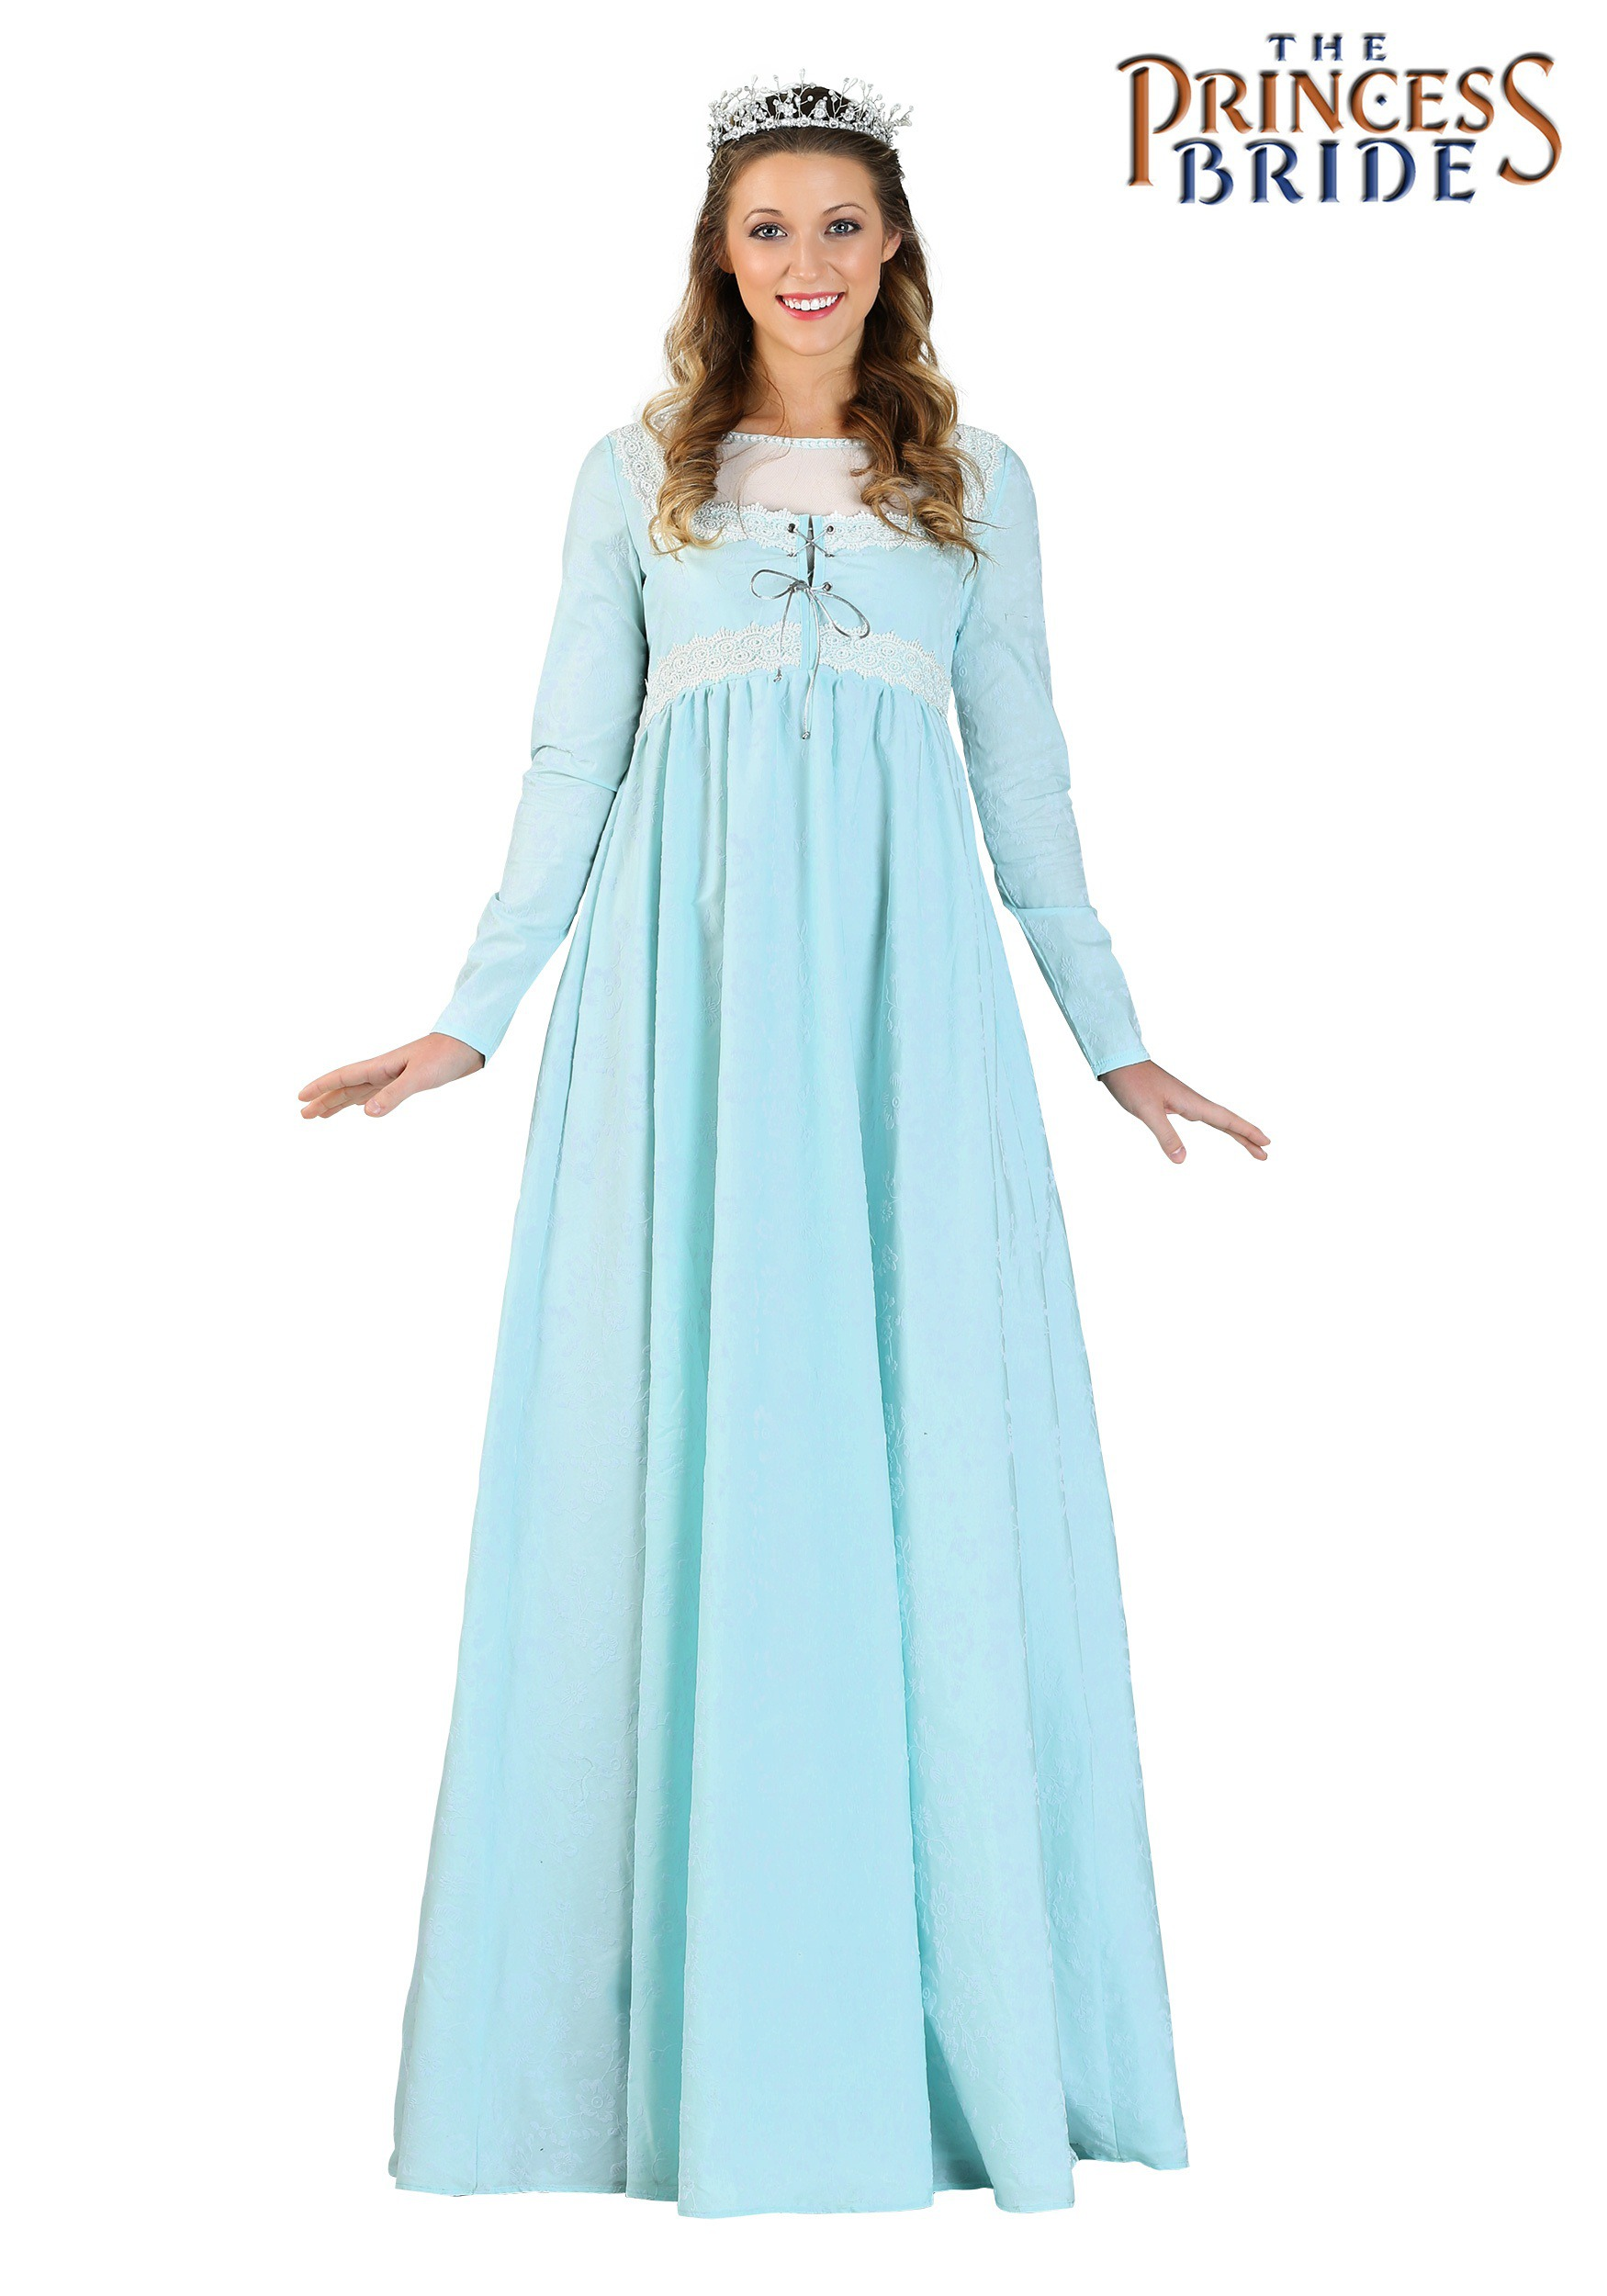 Princess Bride Buttercup Wedding Dress Costume